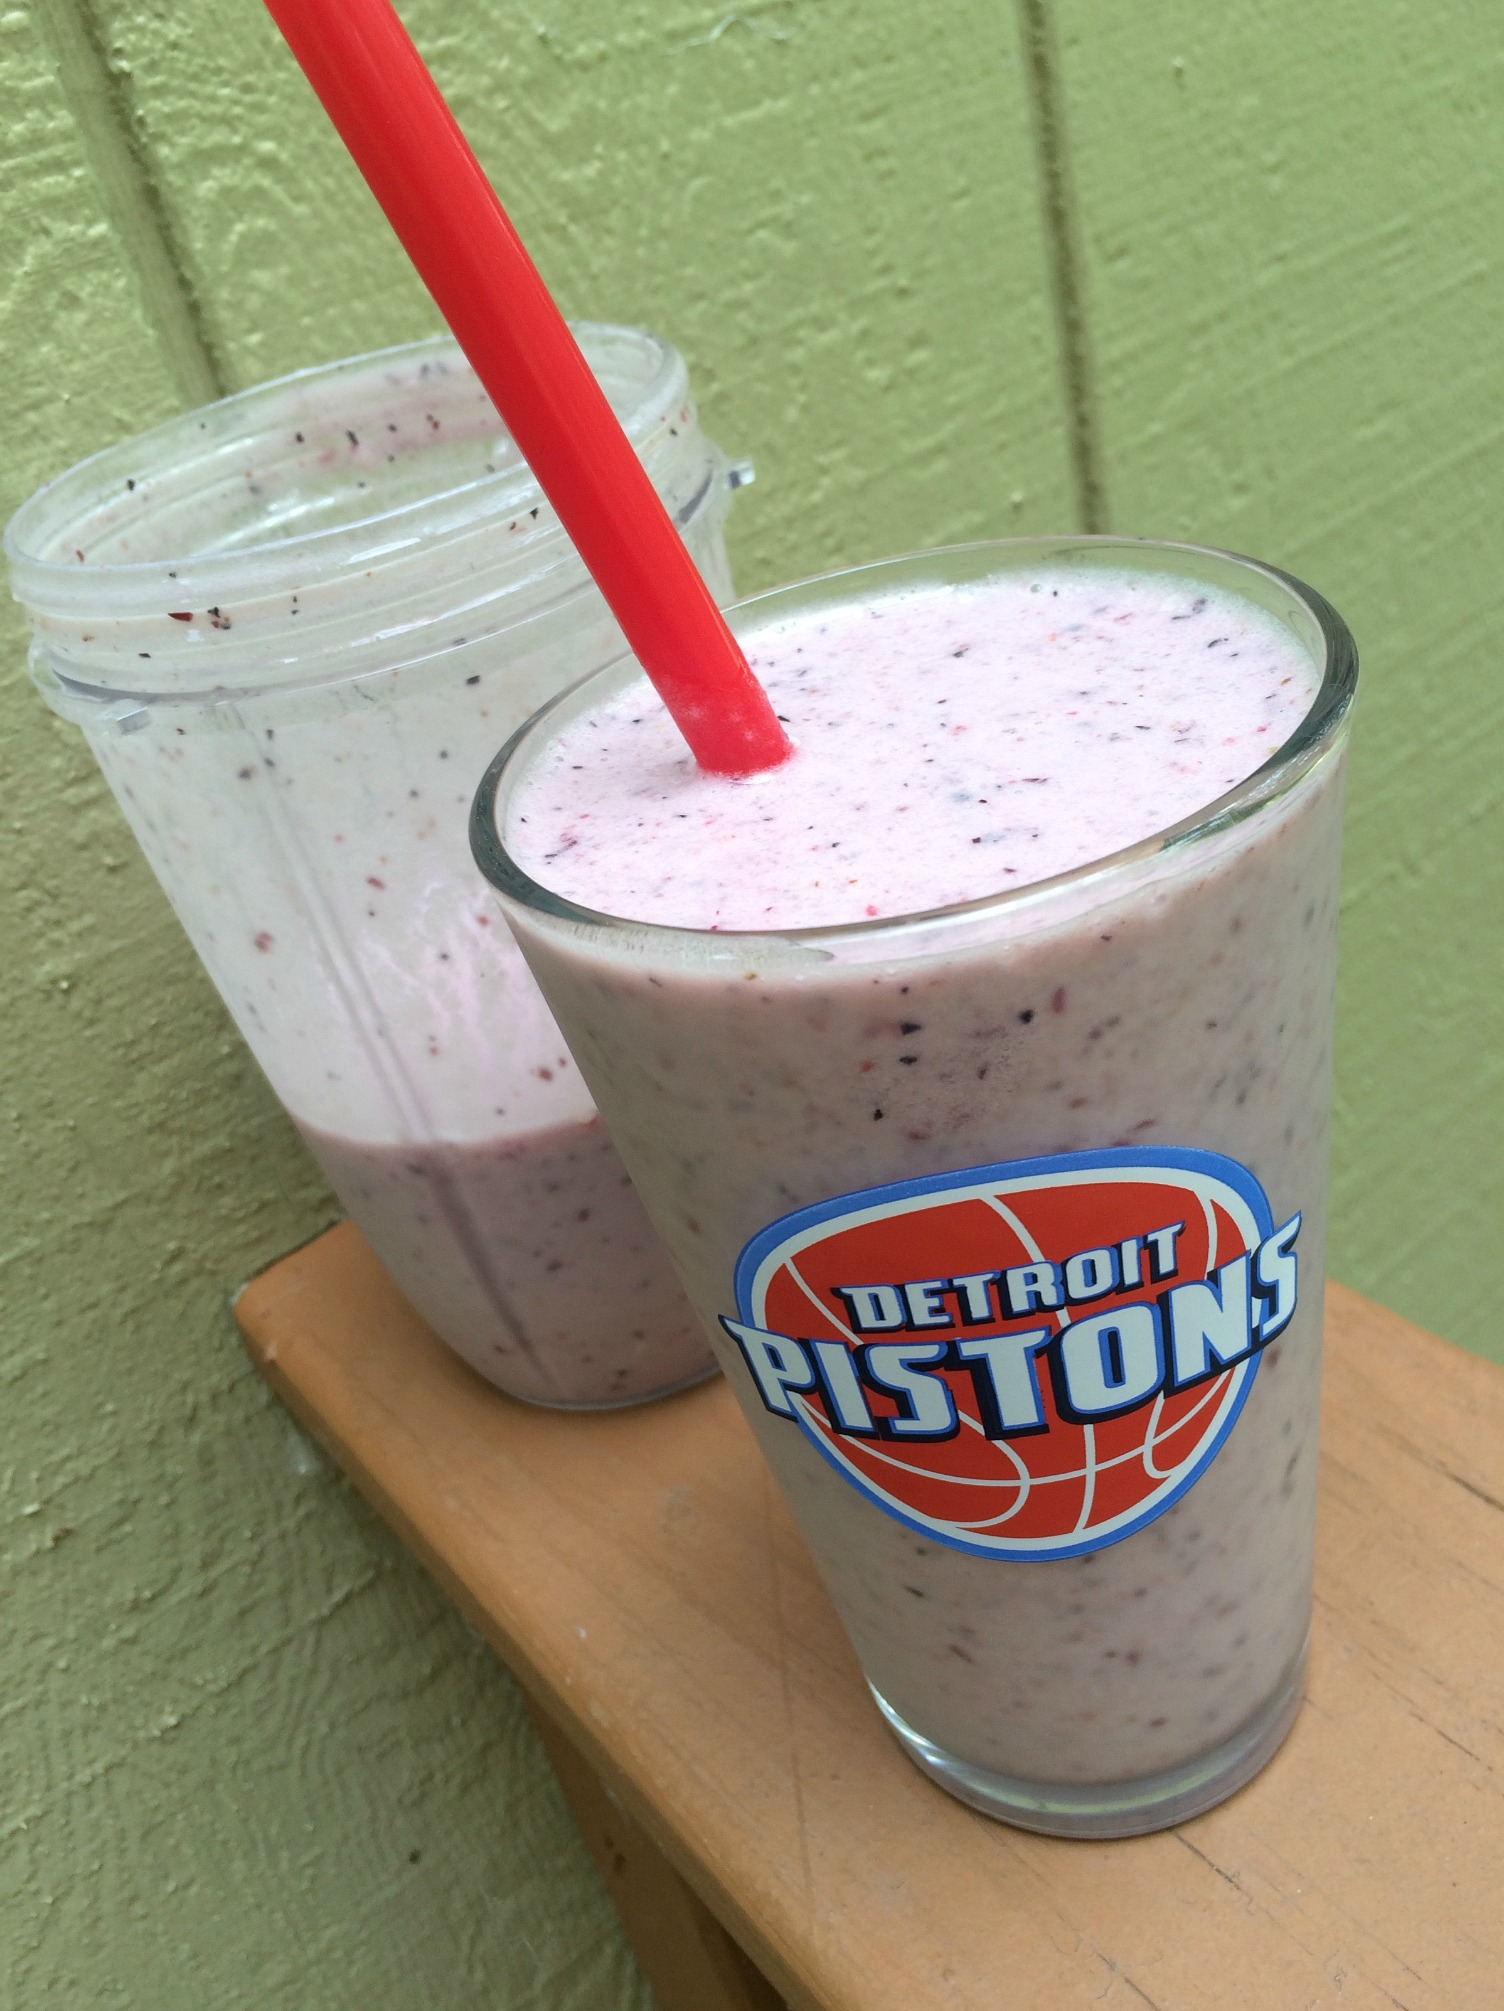 Fruit smoothie in Detroit Pistons cup